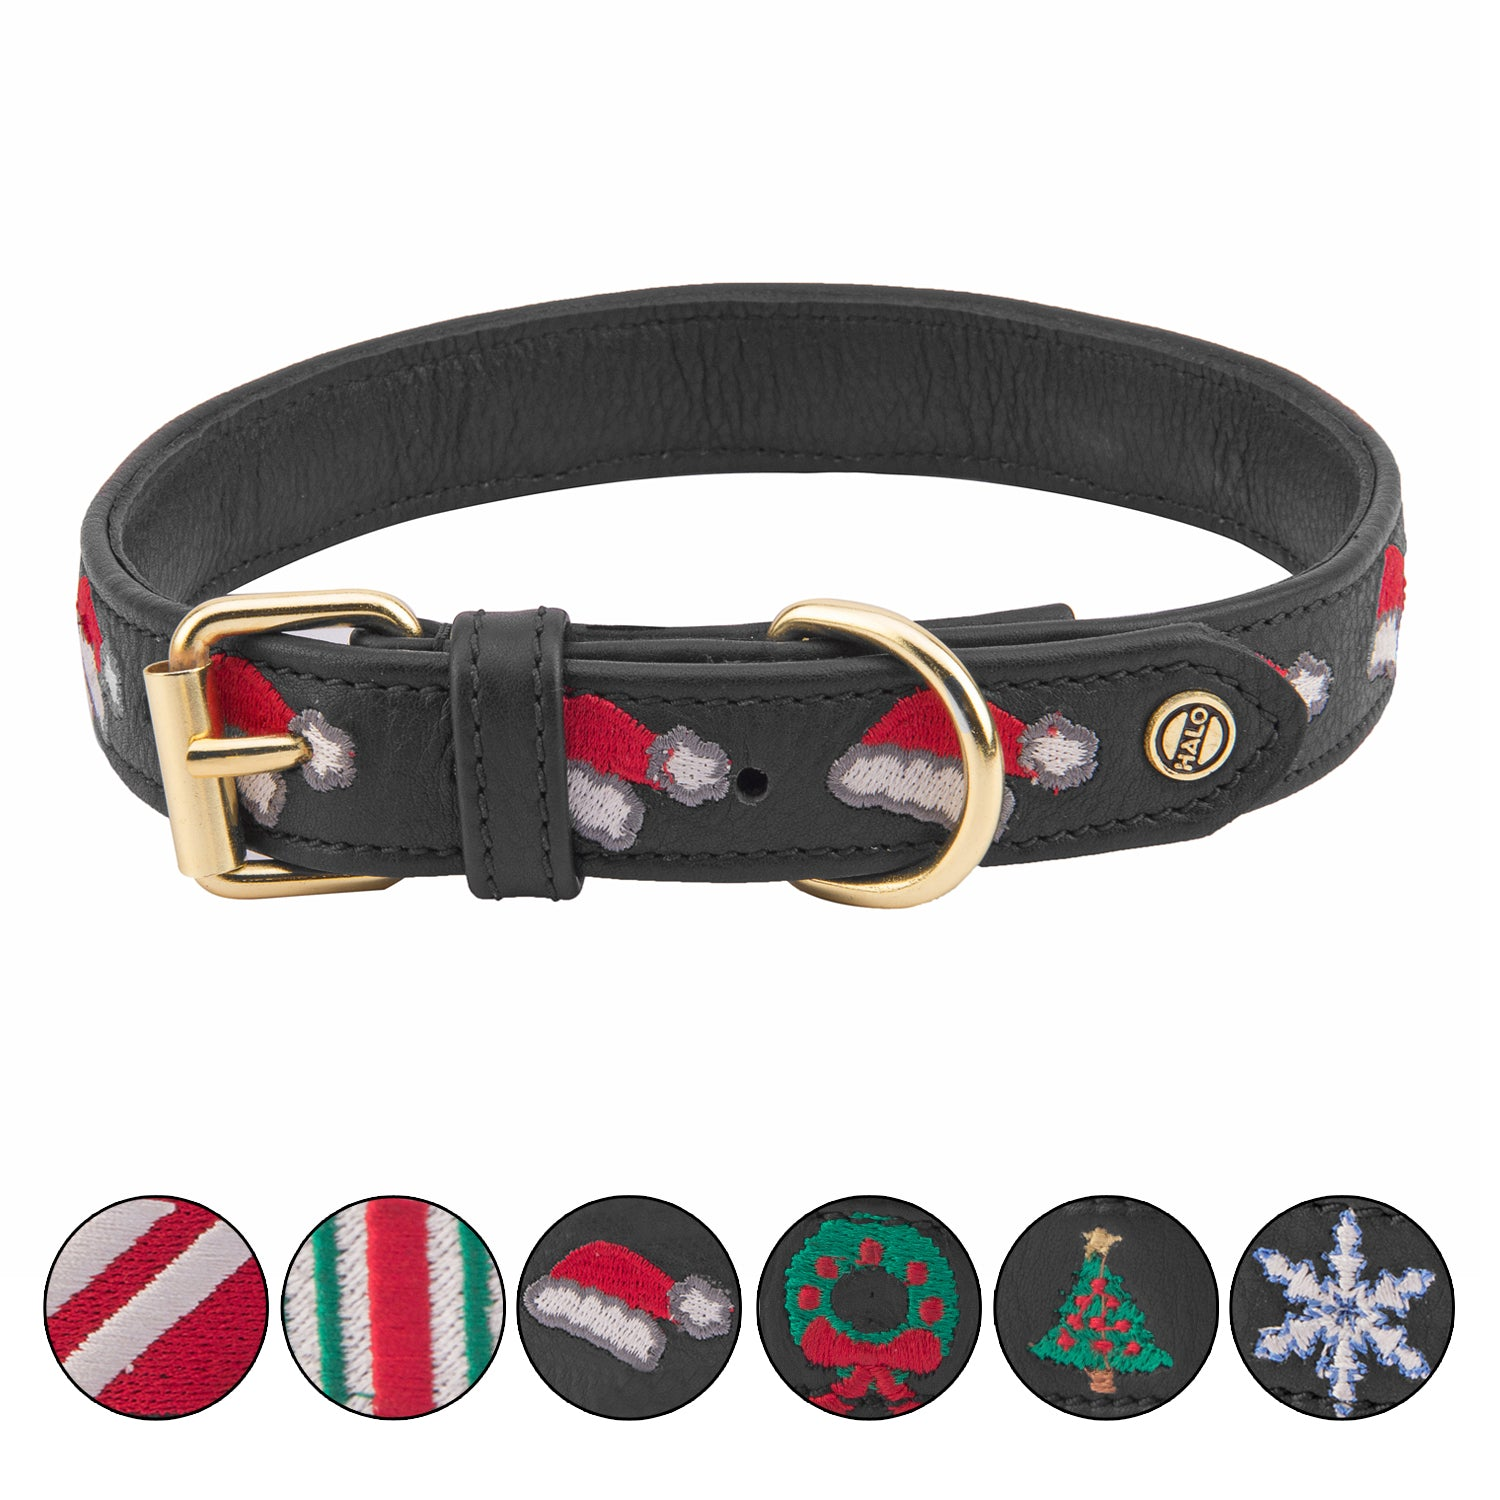 Halo Dog Collar - Leather with Christmas Santa Hat Embroidery_2021